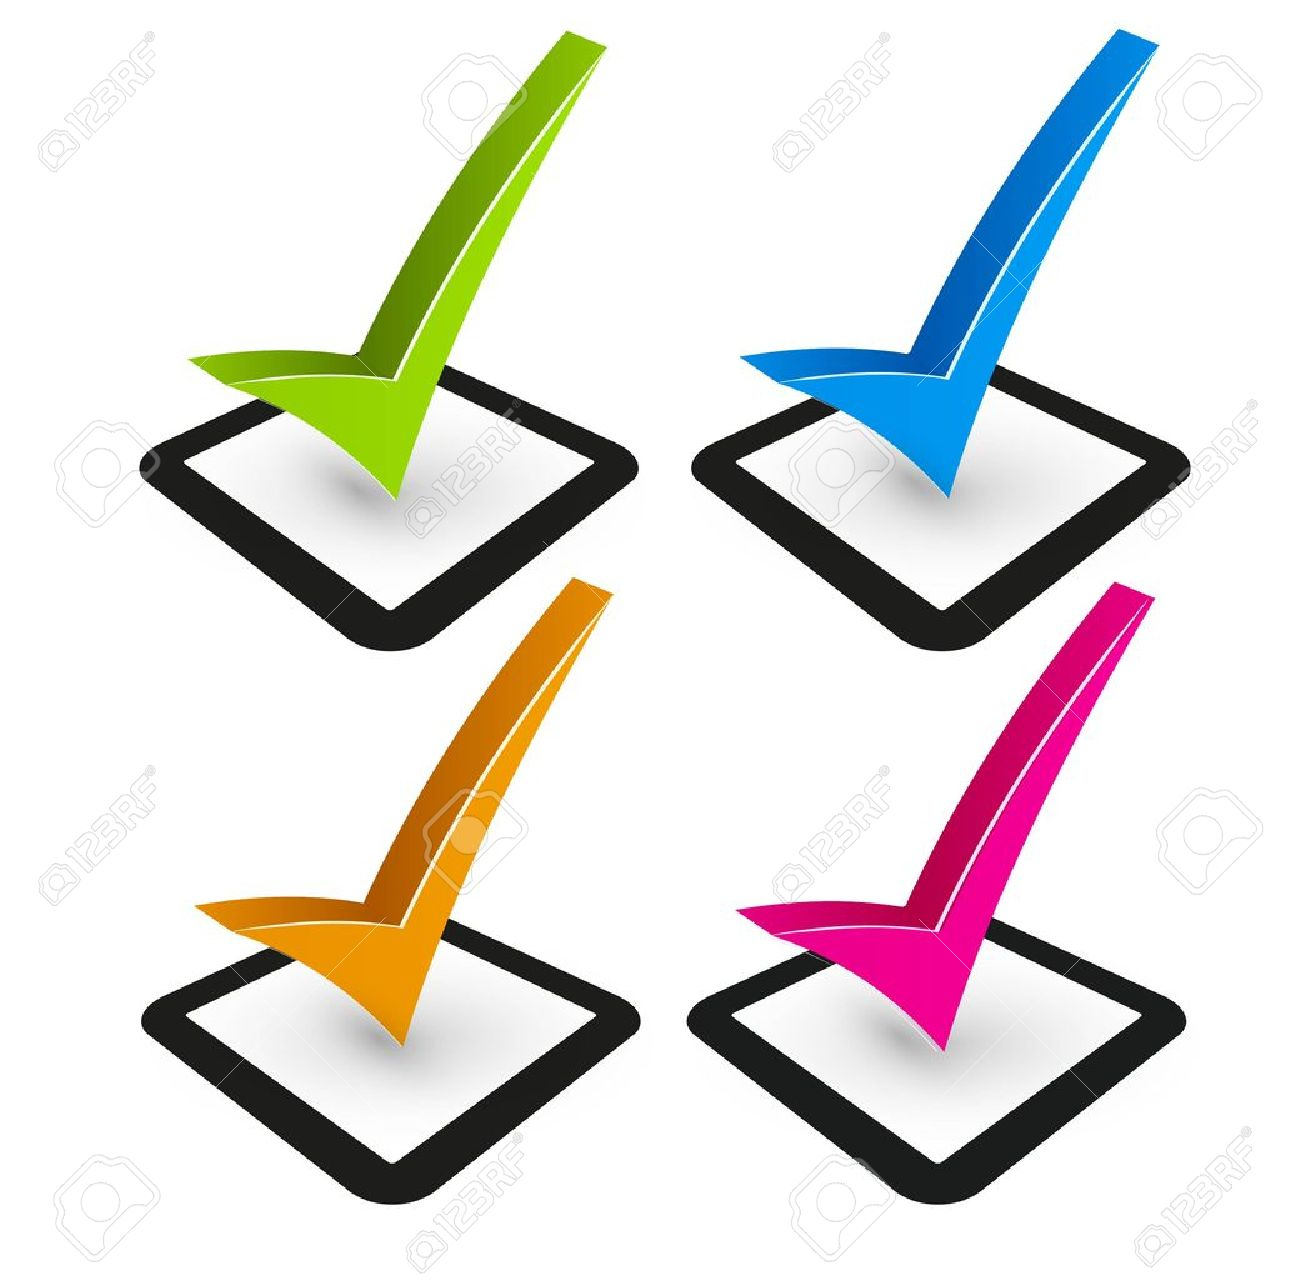 Day of the week check boxes clipart picture transparent library Vote Check Mark | Free download best Vote Check Mark on ClipArtMag.com picture transparent library